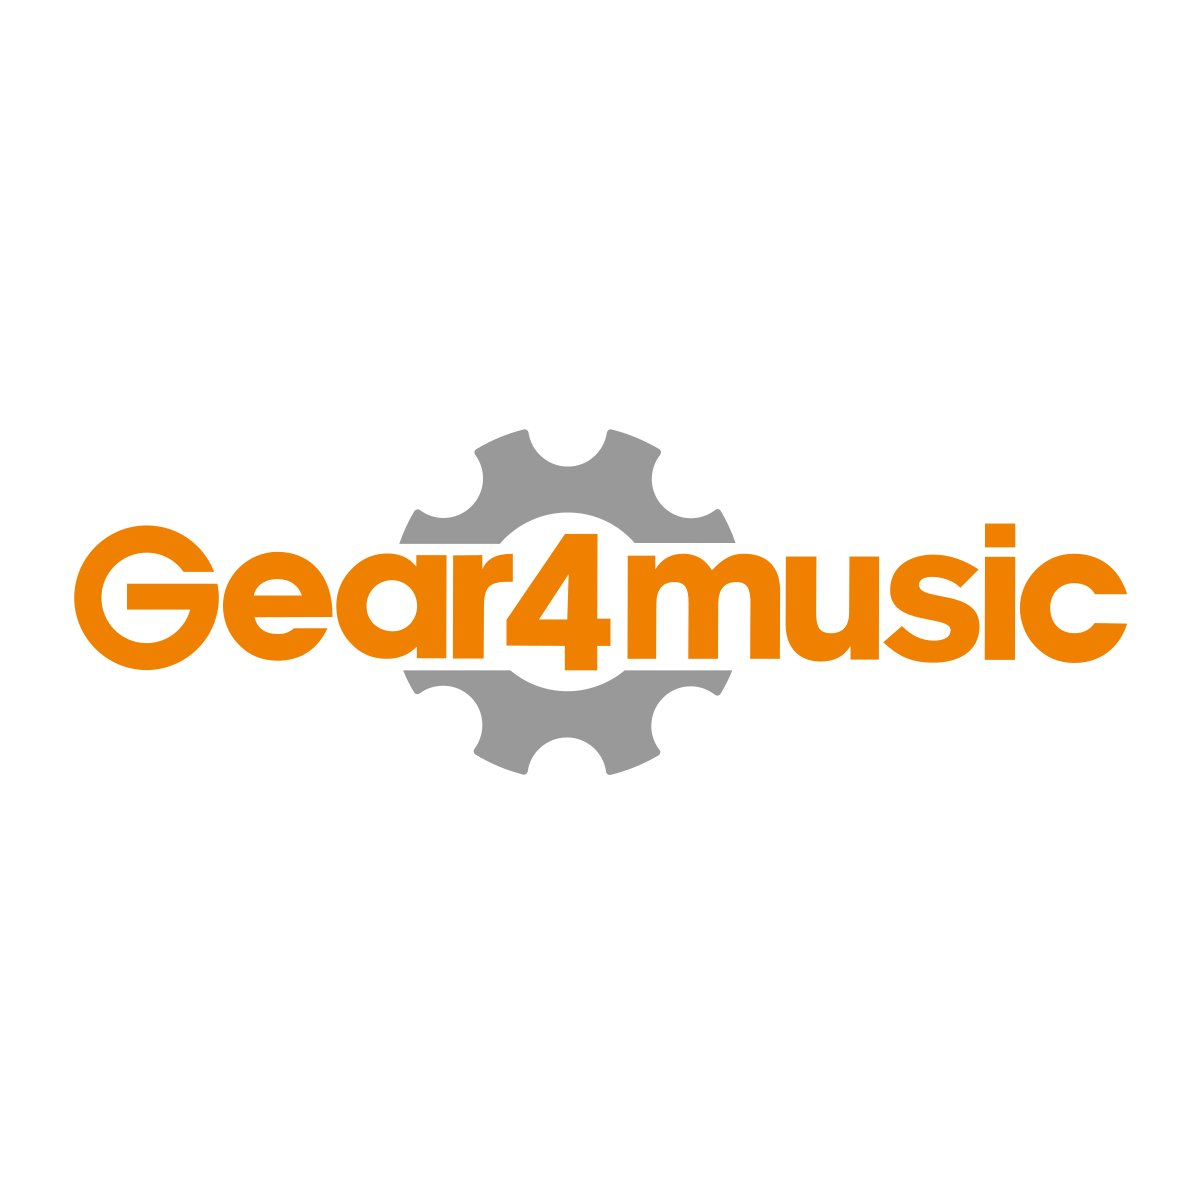 Luce Derby Cluster di Gear4music